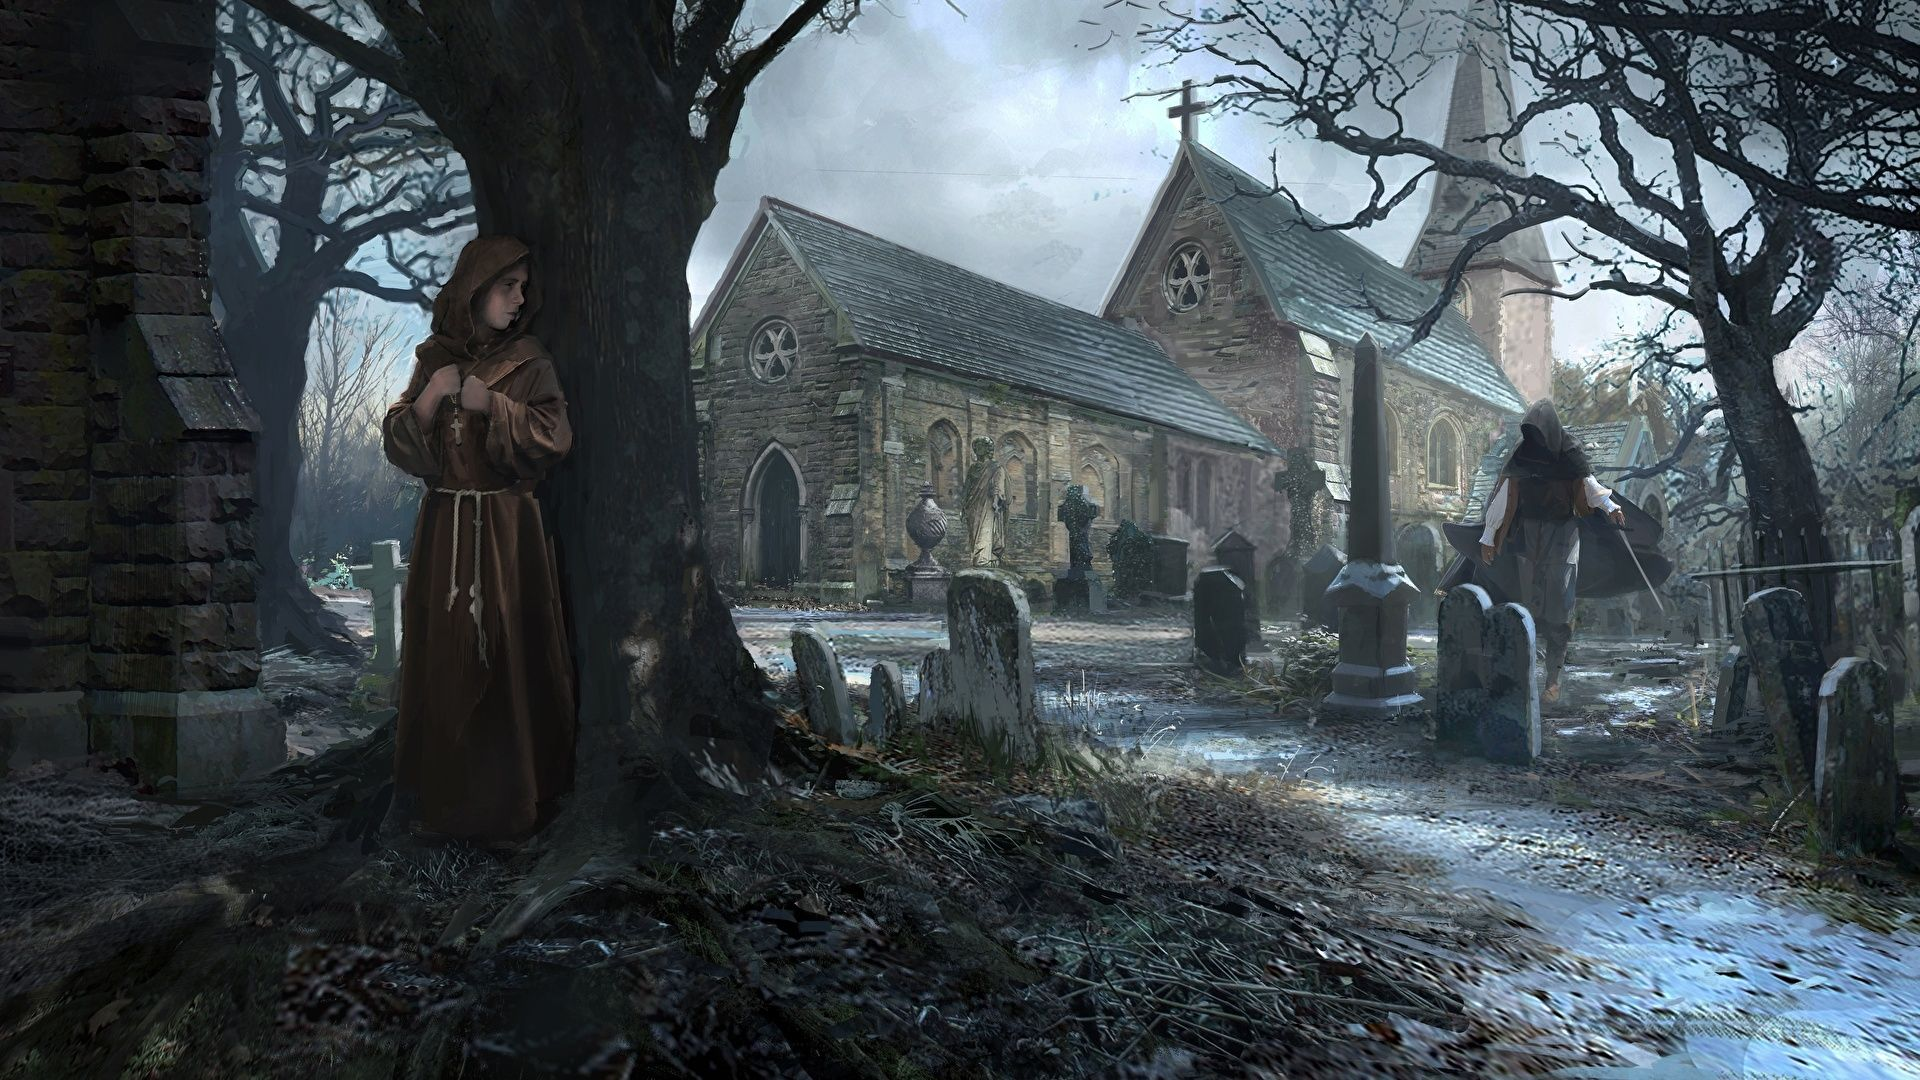 Cemetery Gothic Art, Wallpaper Dark Middle Ages, Gloomy Church, Old Cemetery